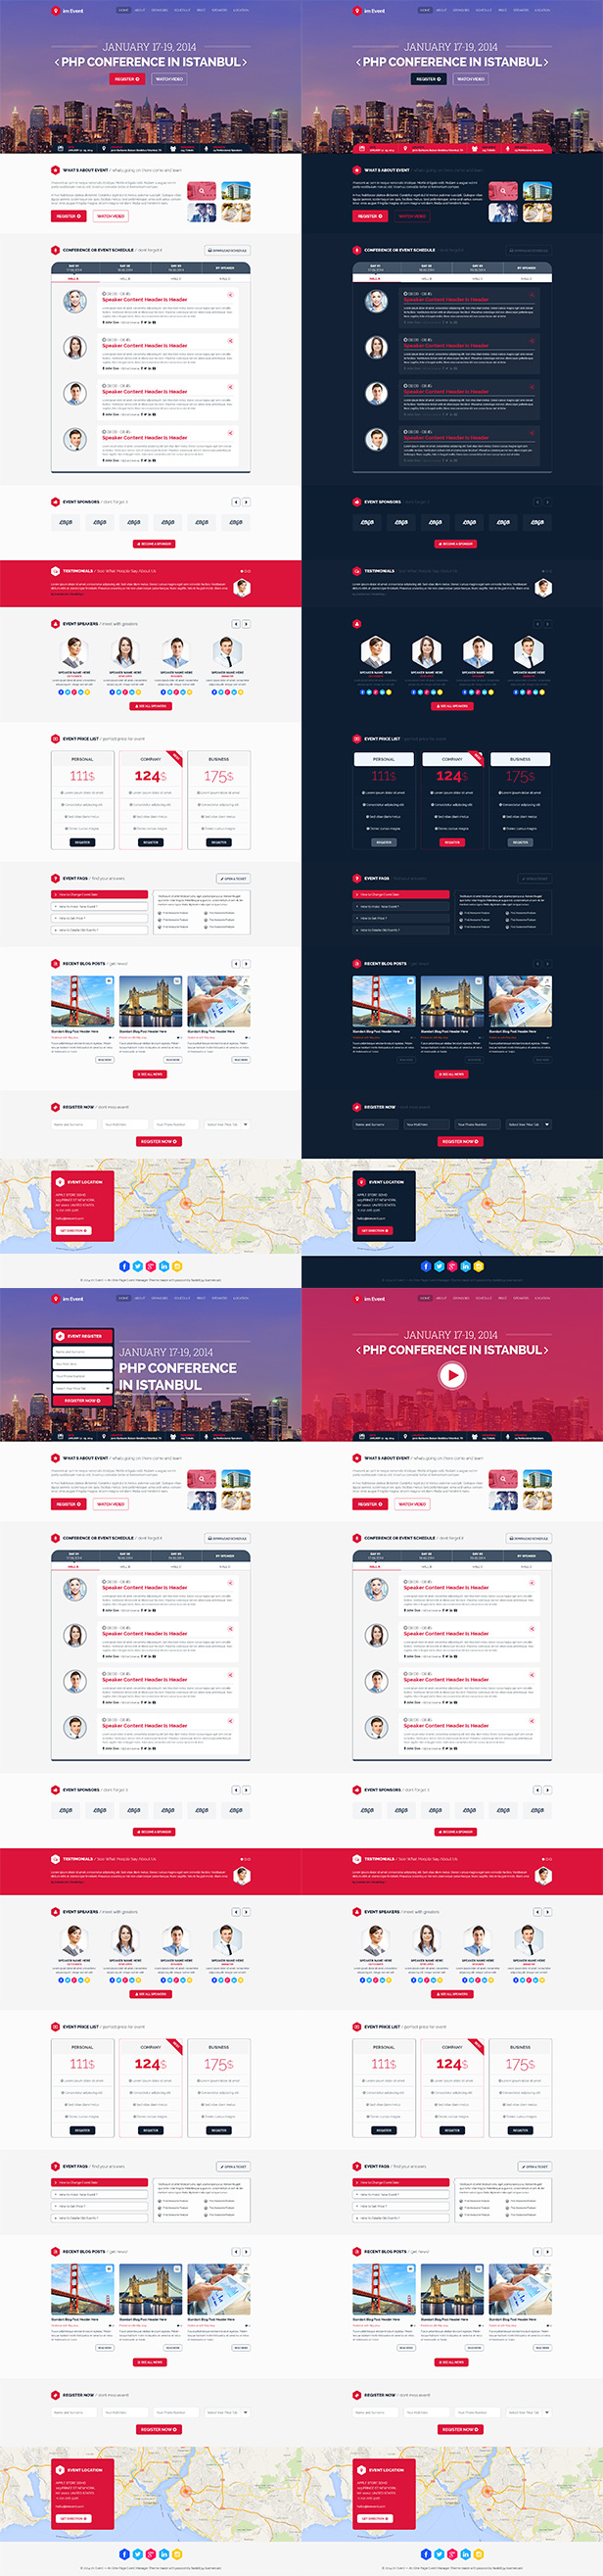 imEvent - Conference Landing Page HTML Template - 5